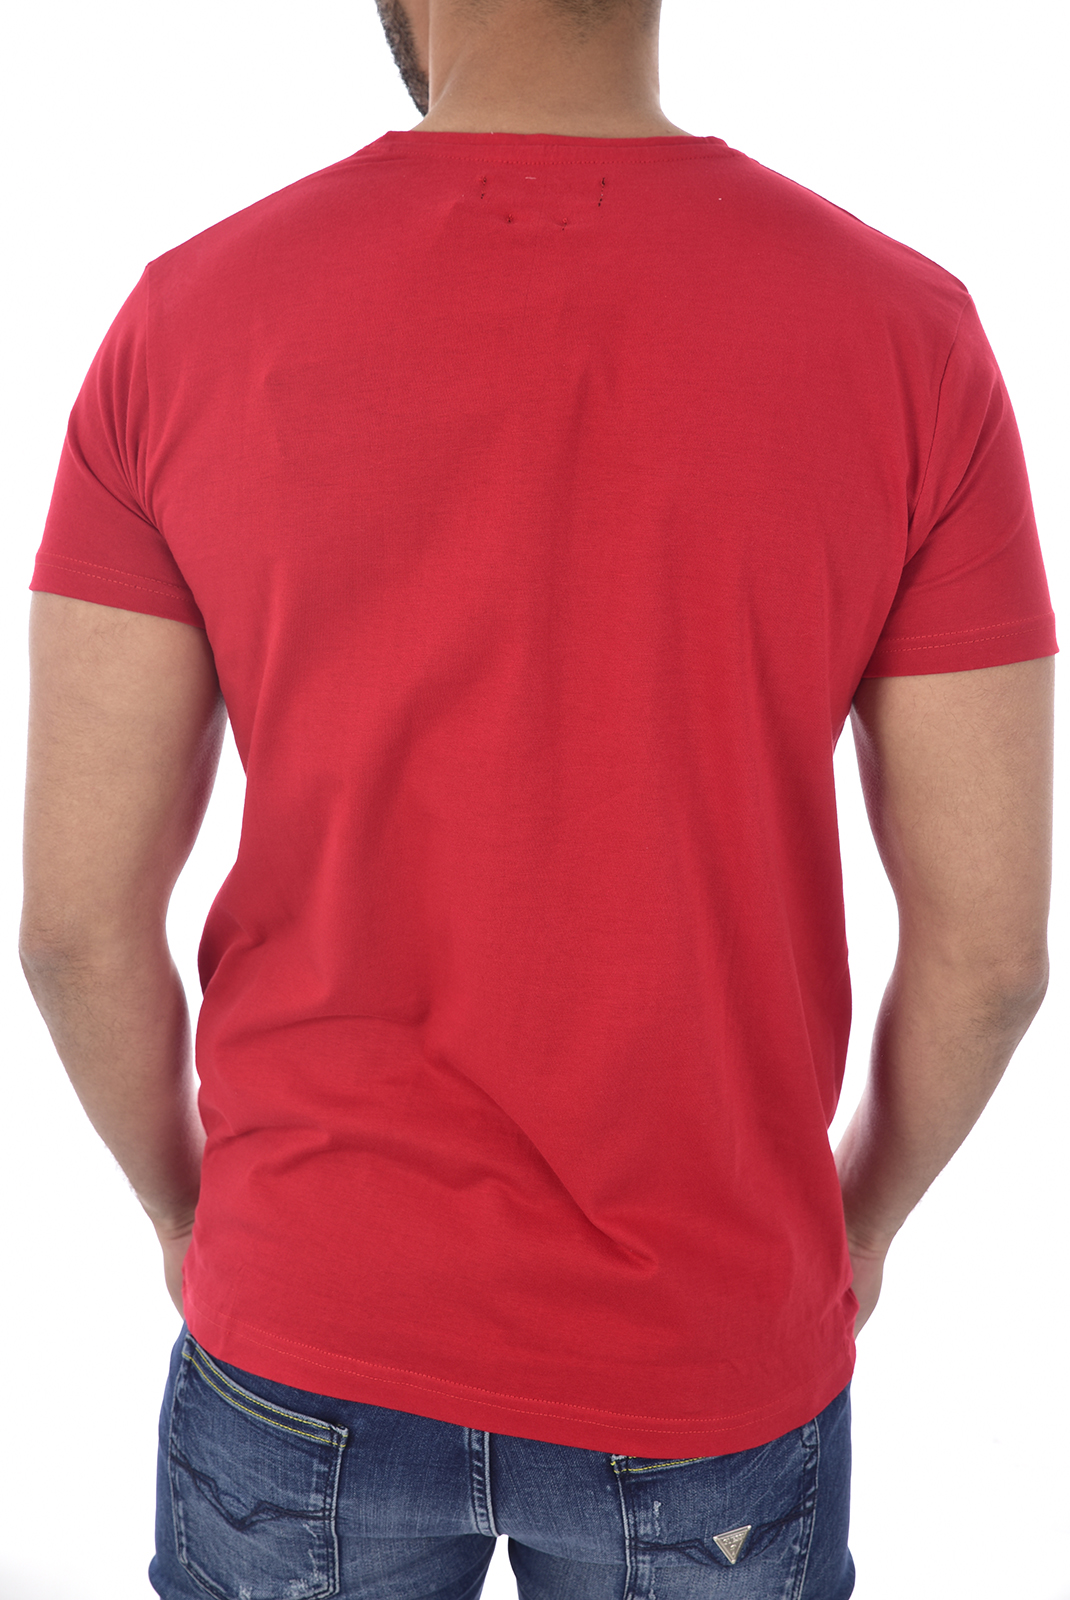 T-S manches courtes  Hite couture MITIL RED